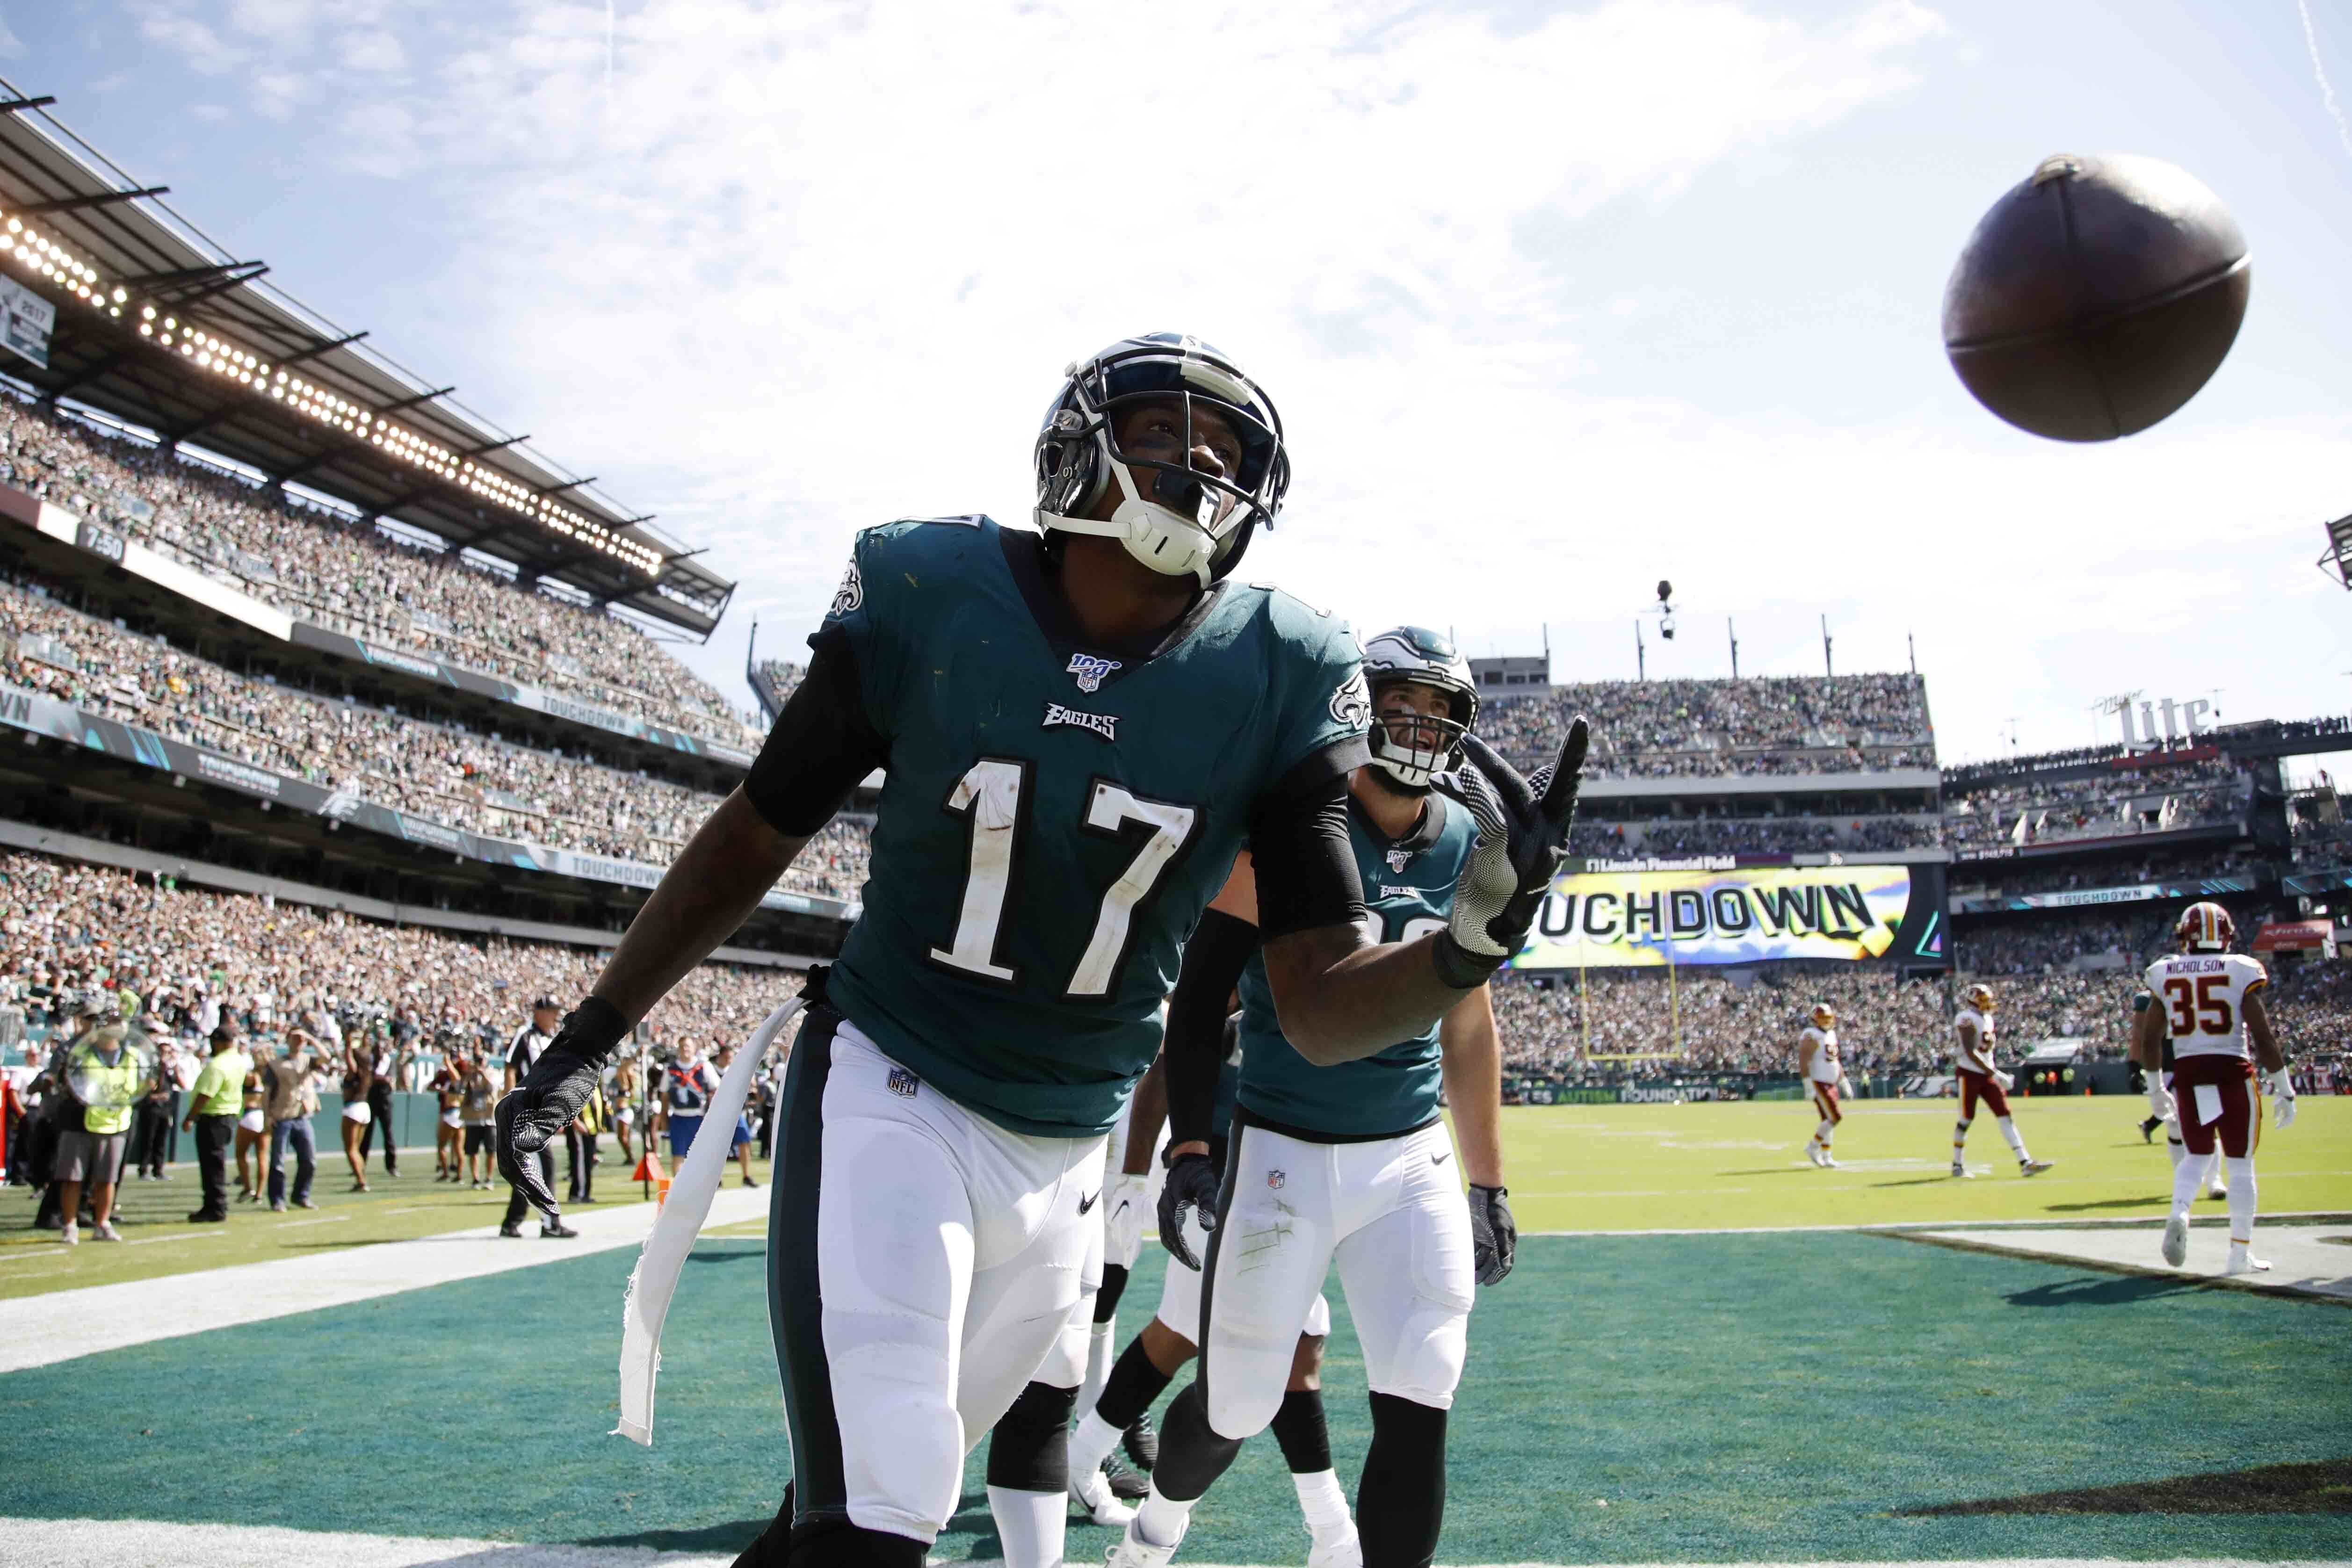 NFL rumors: Eagles' Alshon Jeffery could miss Lions, Packers games with latest injury | What happens at WR? Jordan Matthews? Greg Ward?